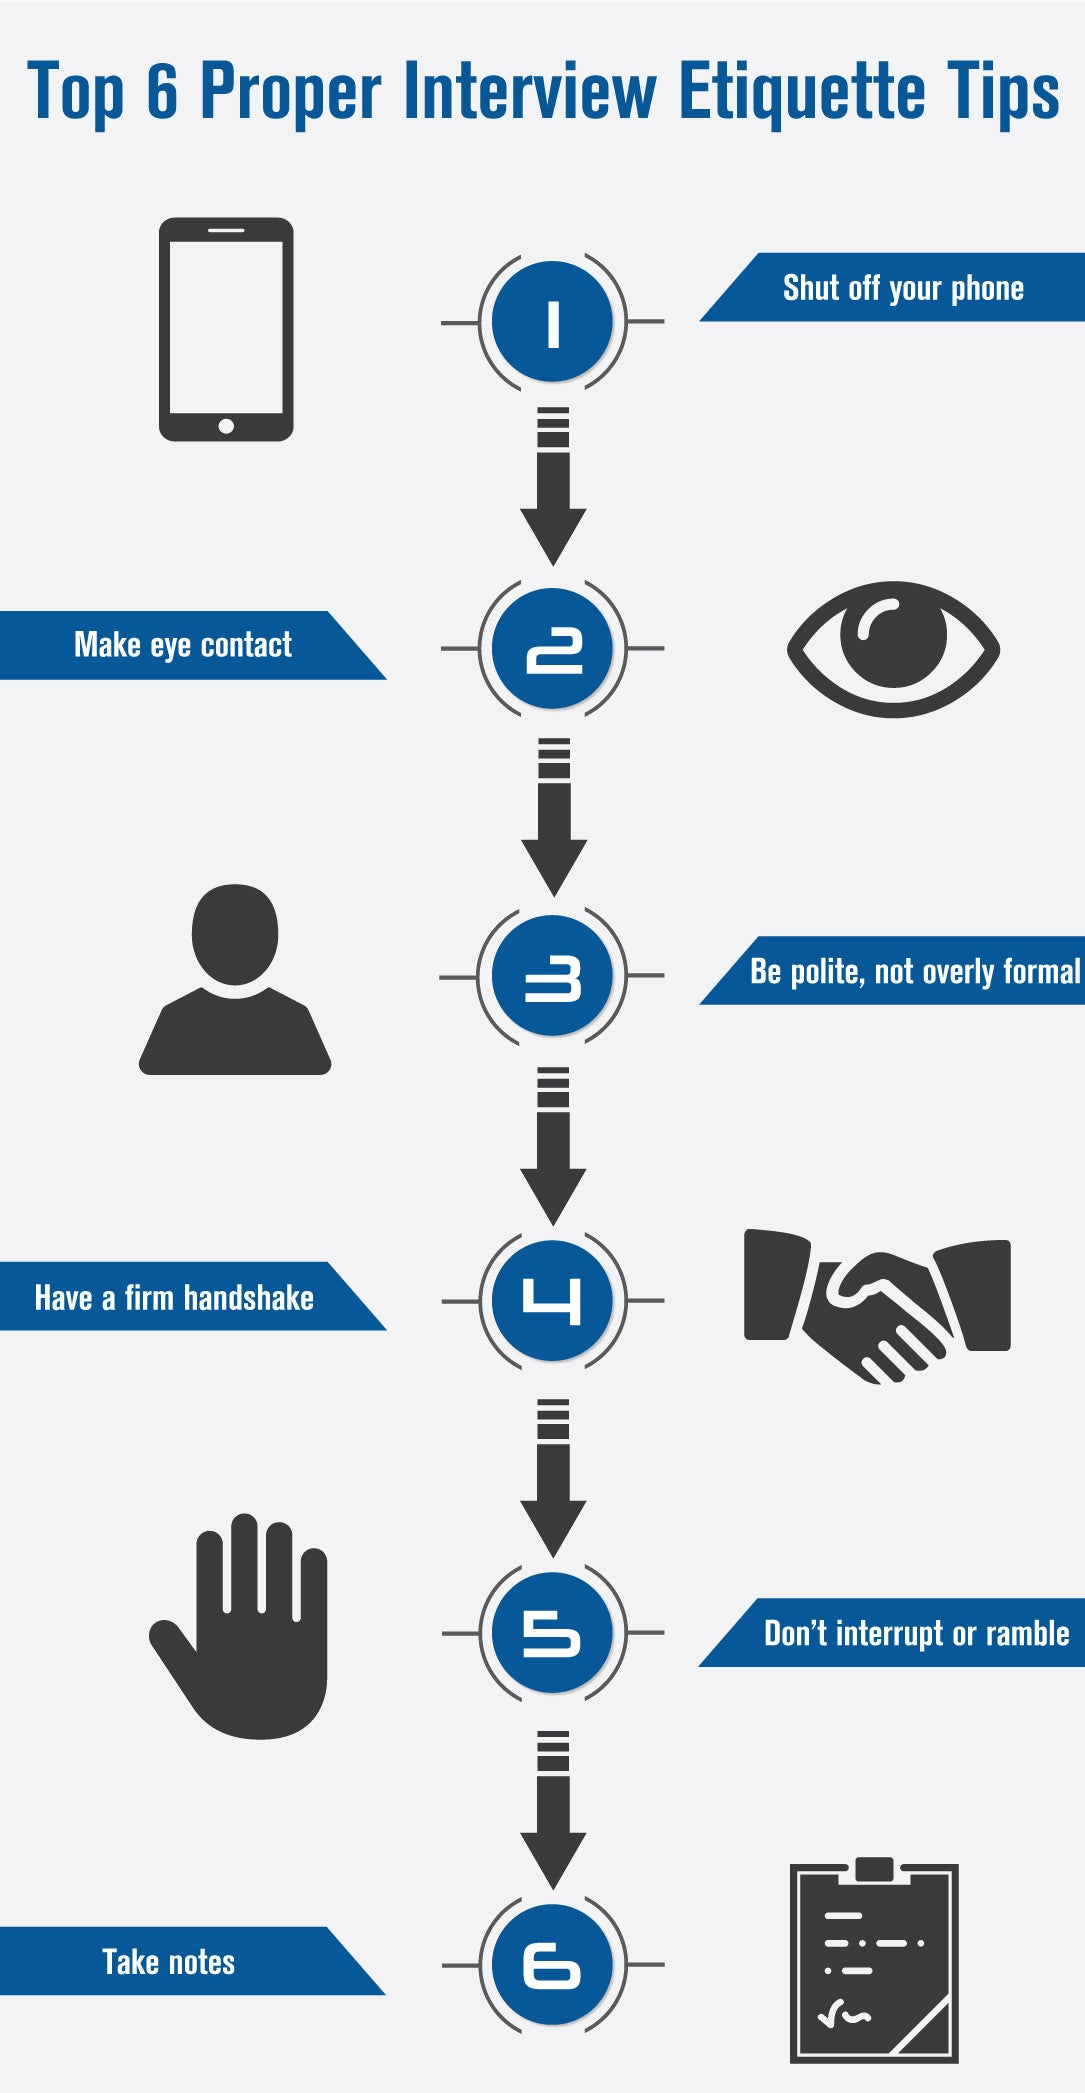 Top 6 Proper Interview Etiquette Tips Infograph